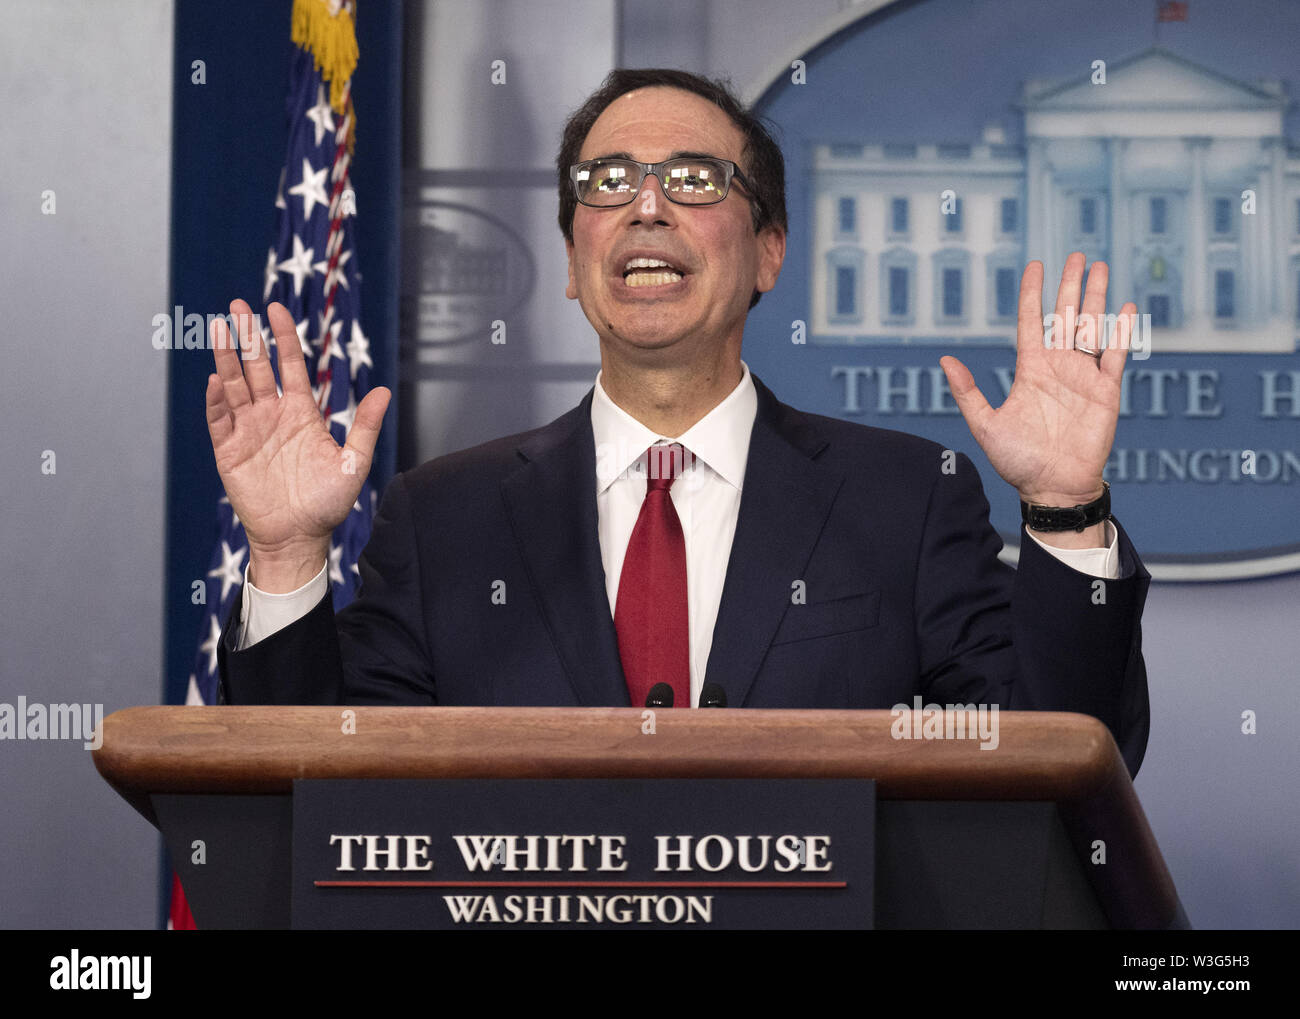 Washington, District of Columbia, USA. 15th July, 2019. United States Secretary of the Treasury Steven T. Mnuchin gestures as he holds a press briefing in the Brady Press Briefing Room of the White House in Washington, DC on Monday, July 15, 2019. Sec. Mnuchin was discussing digital assets, including cryptocurrency, such as Bitcoin or Libra Credit: Ron Sachs/CNP/ZUMA Wire/Alamy Live News - Stock Image